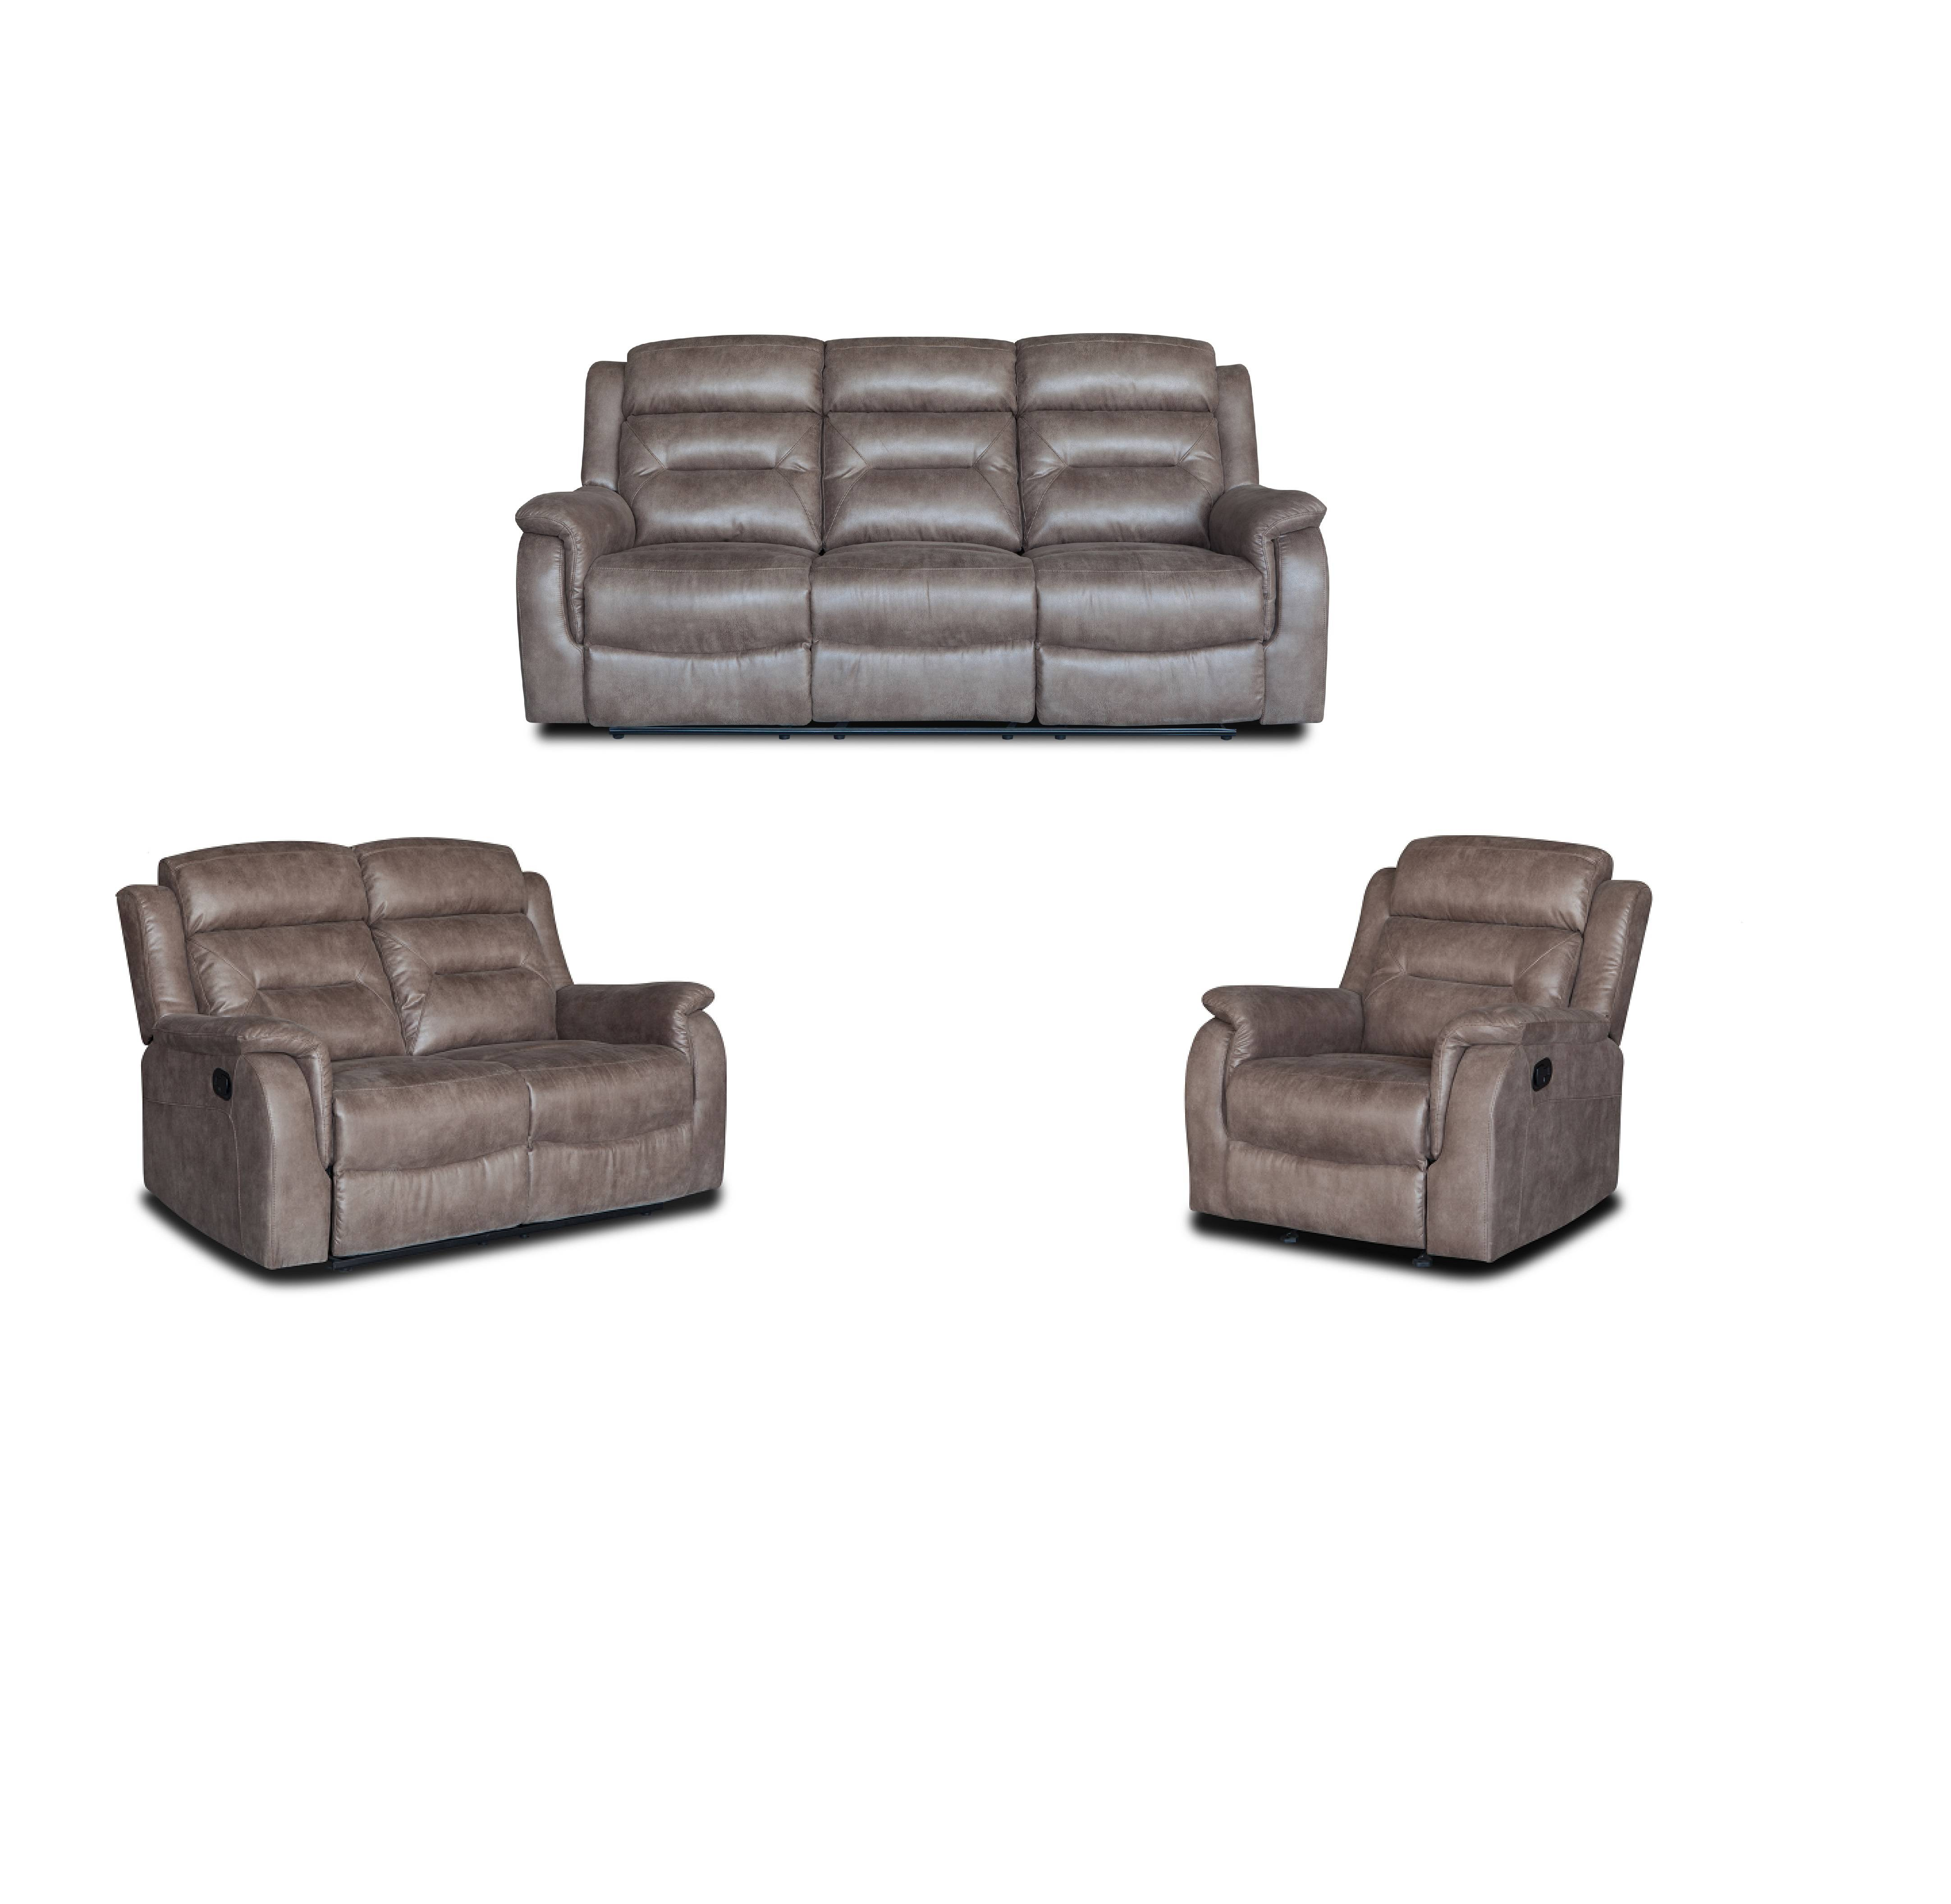 Latest home furniture relax electric 1+2+3 set sofa recliner